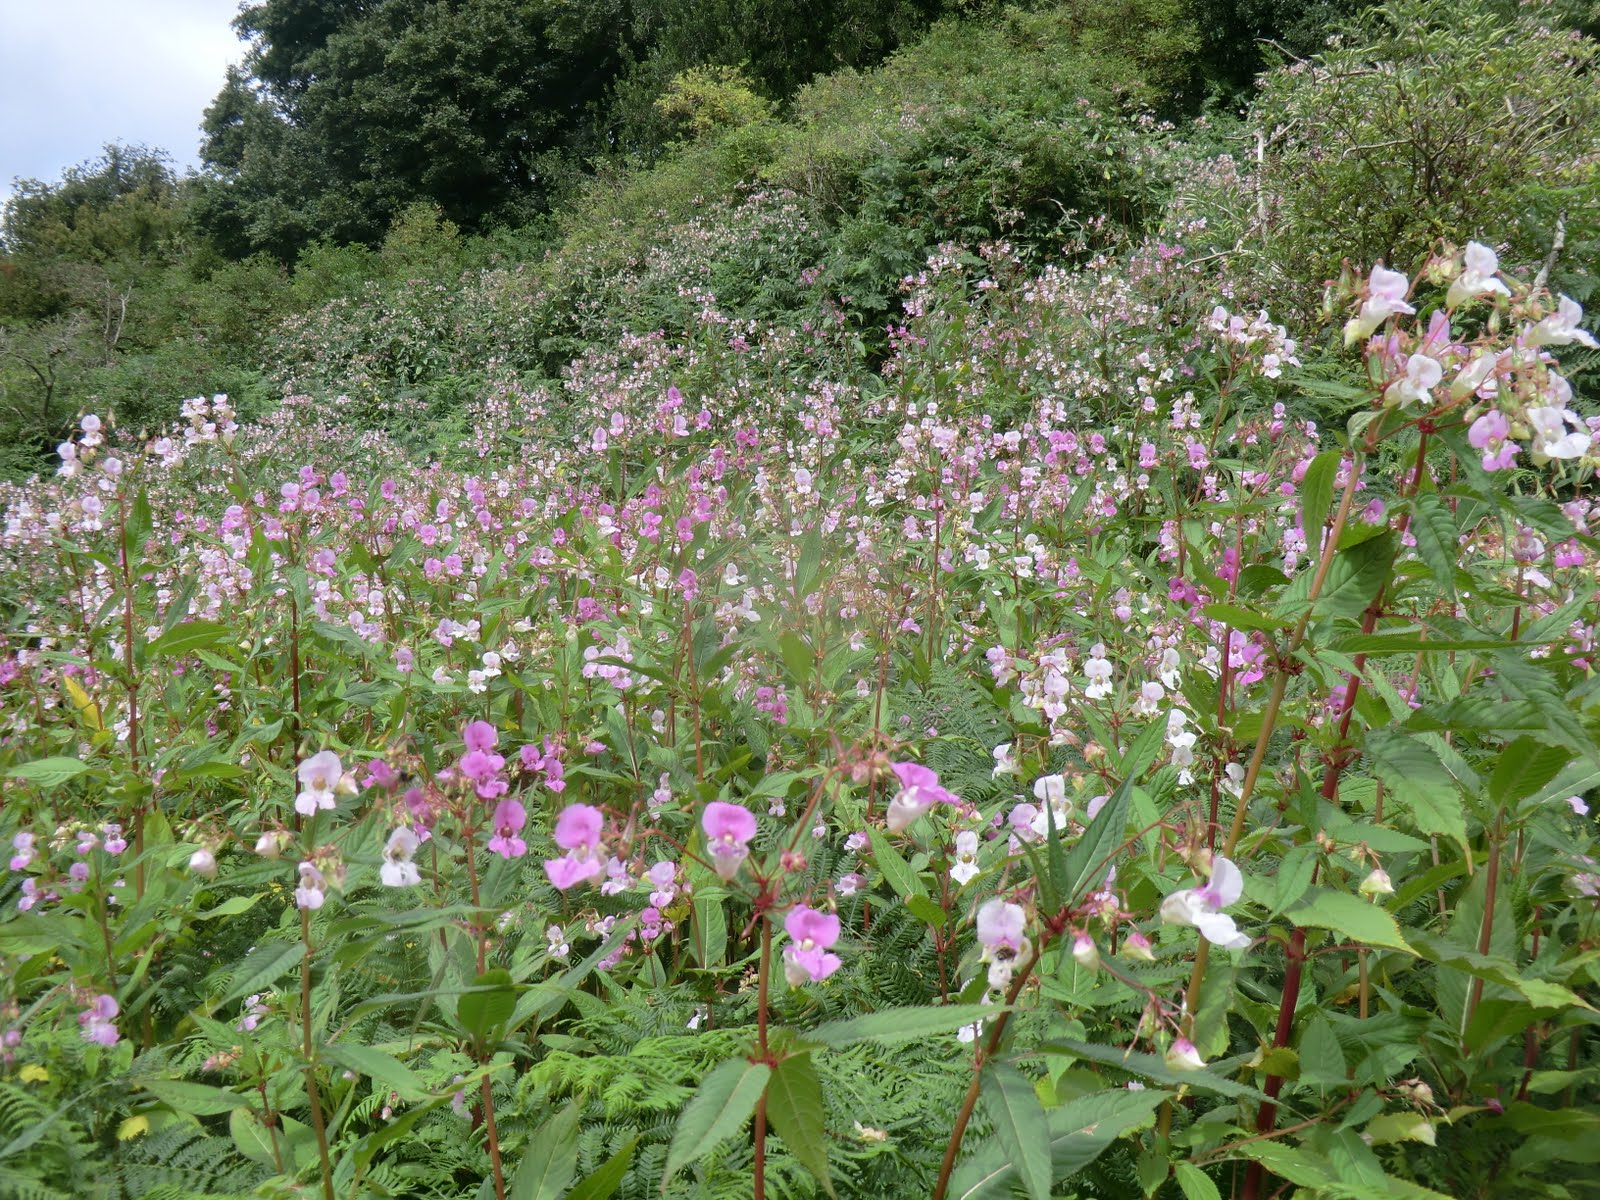 CIMG5922 Himalayan Balsam in the Medway valley